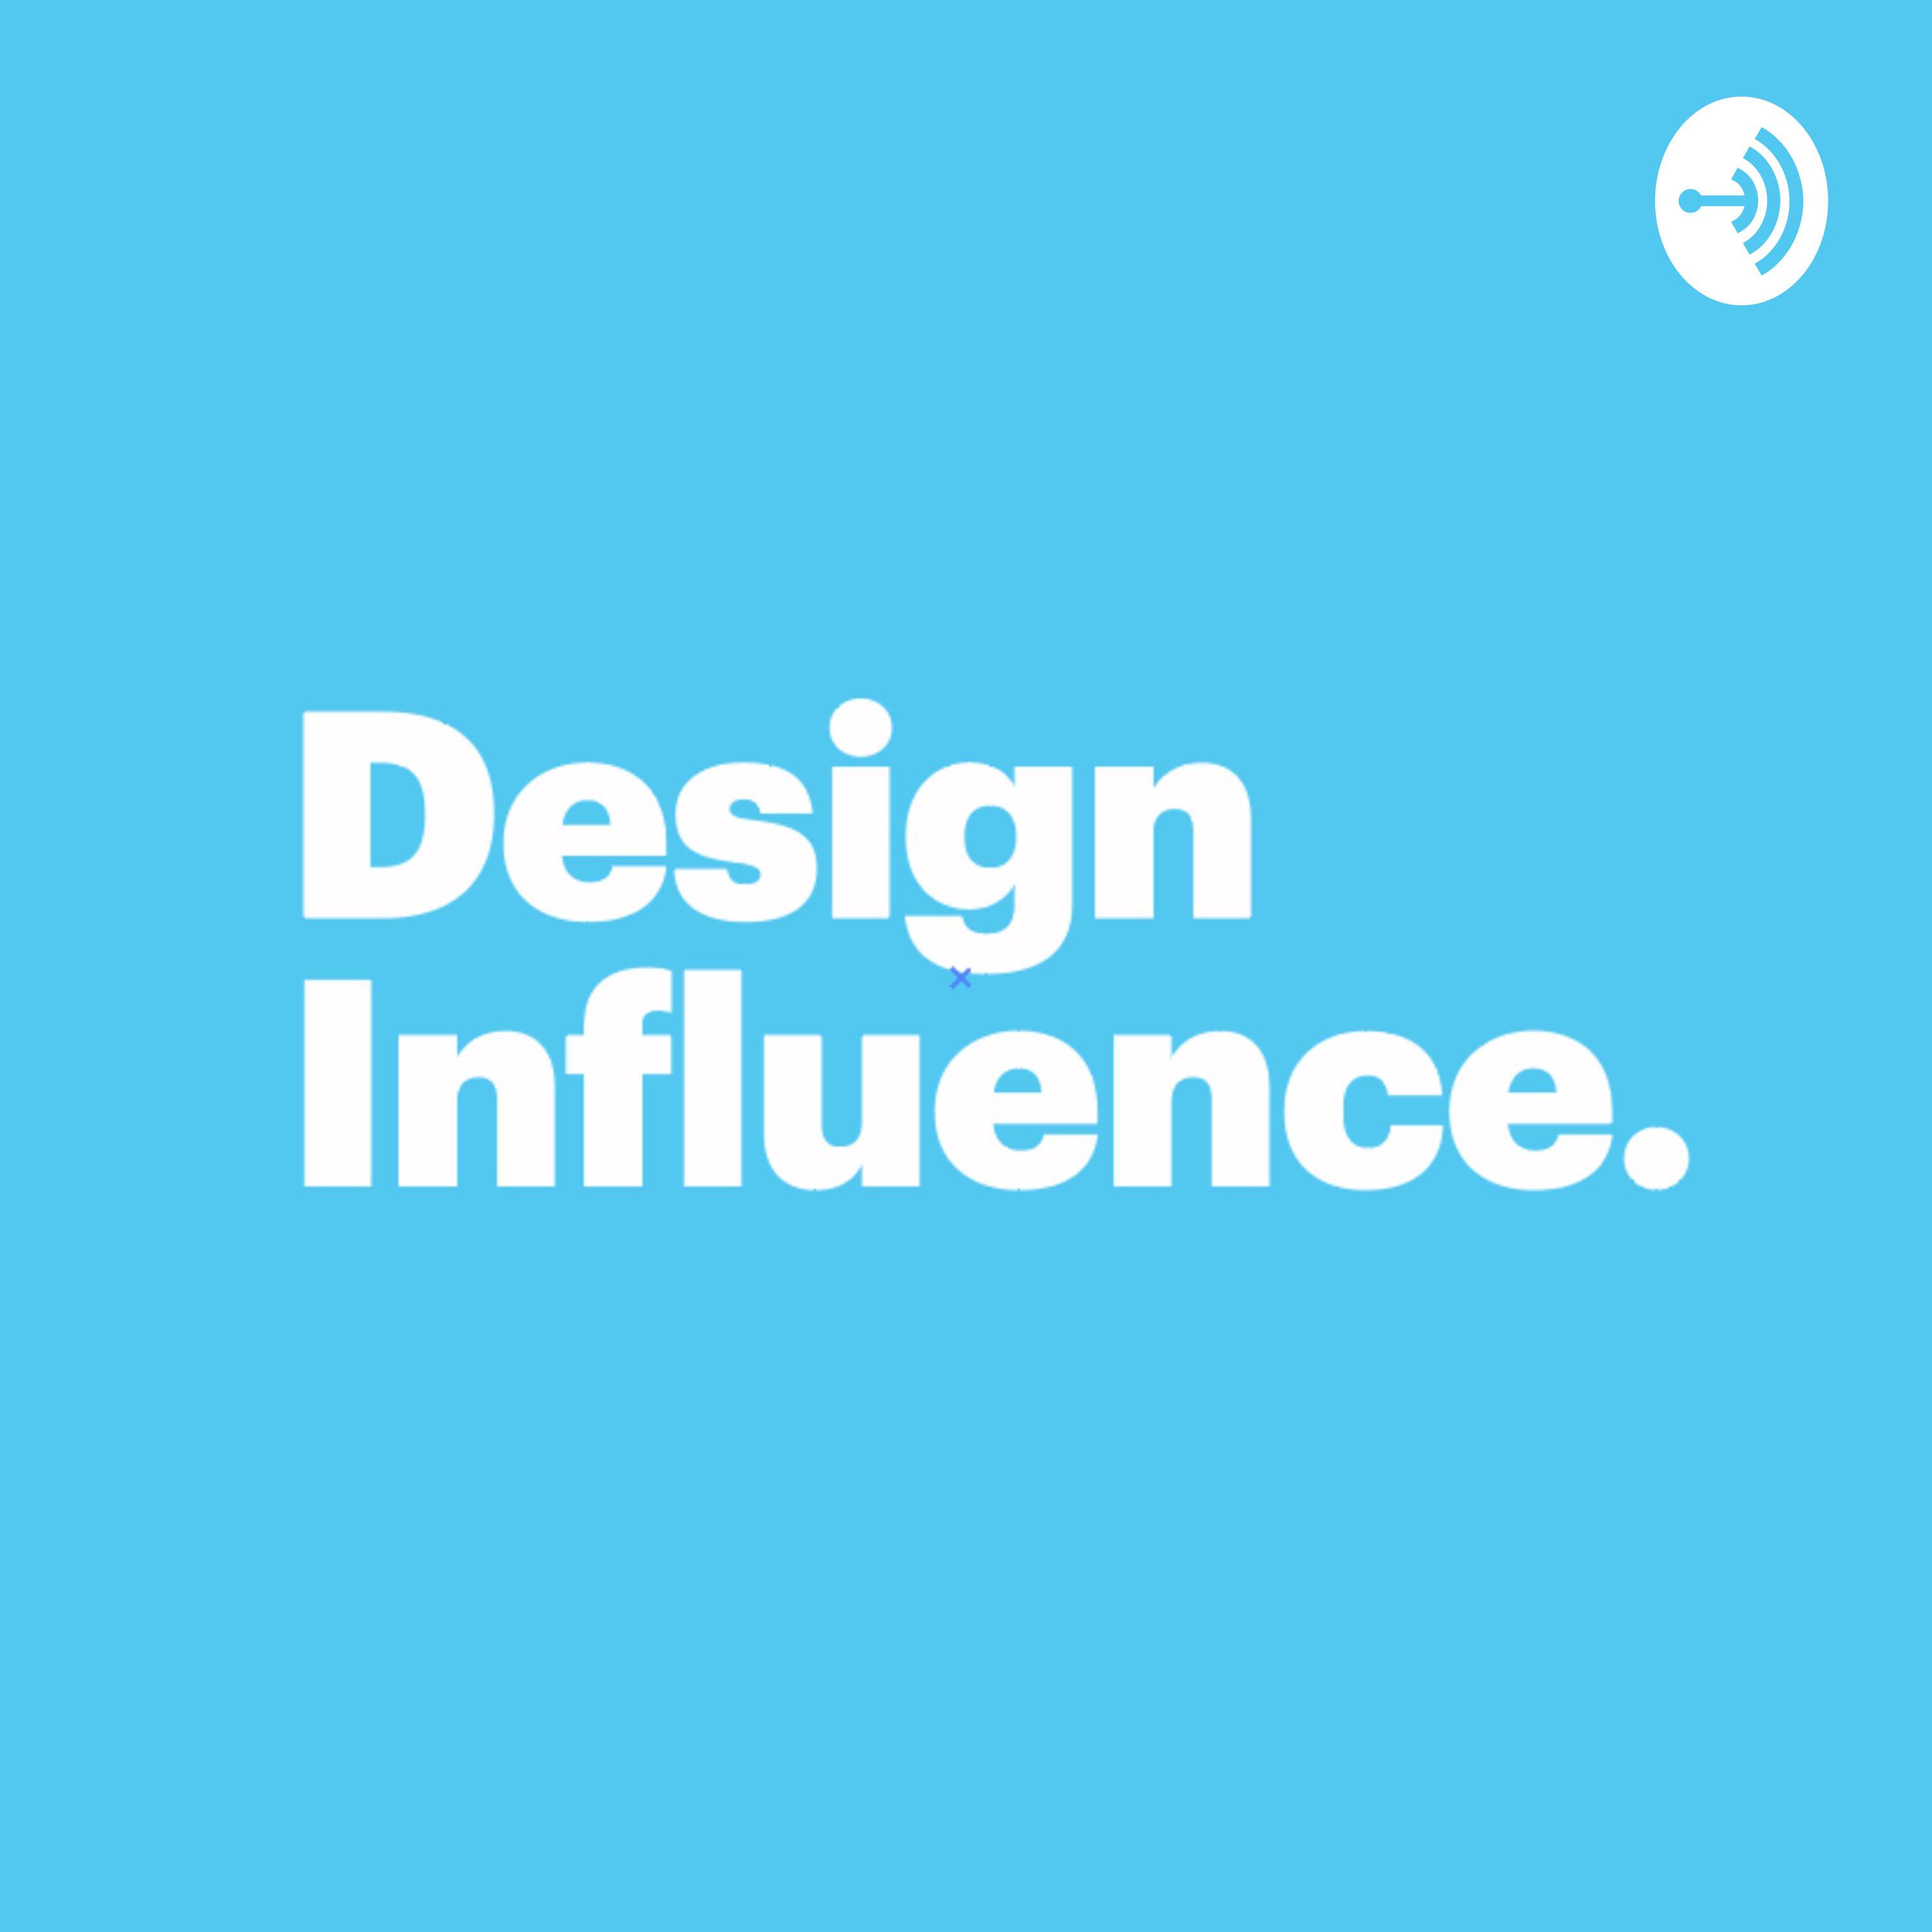 Hello! This is Design Influence